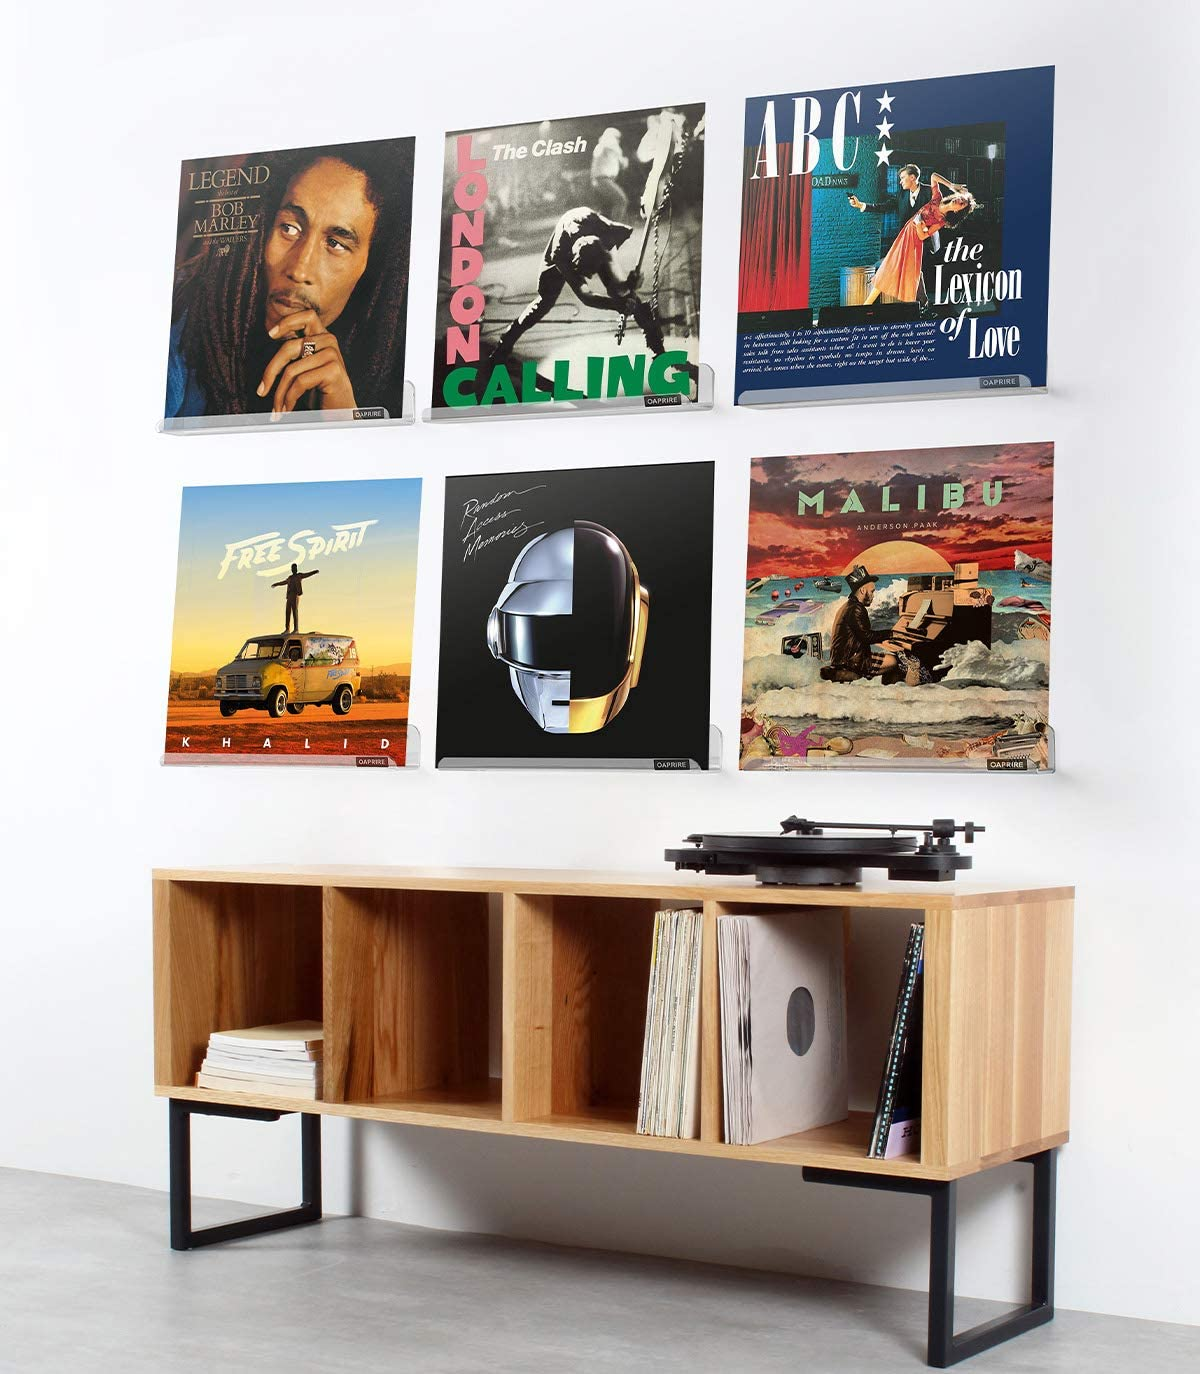 OAPRIRE Vinyl Record Holder Shelf Set of 6 - Display for Your Favorite LP Records - Best Clear Acrylic Record Shelf Wall Mount - Create Stylish&Custom Spaces : Office Products